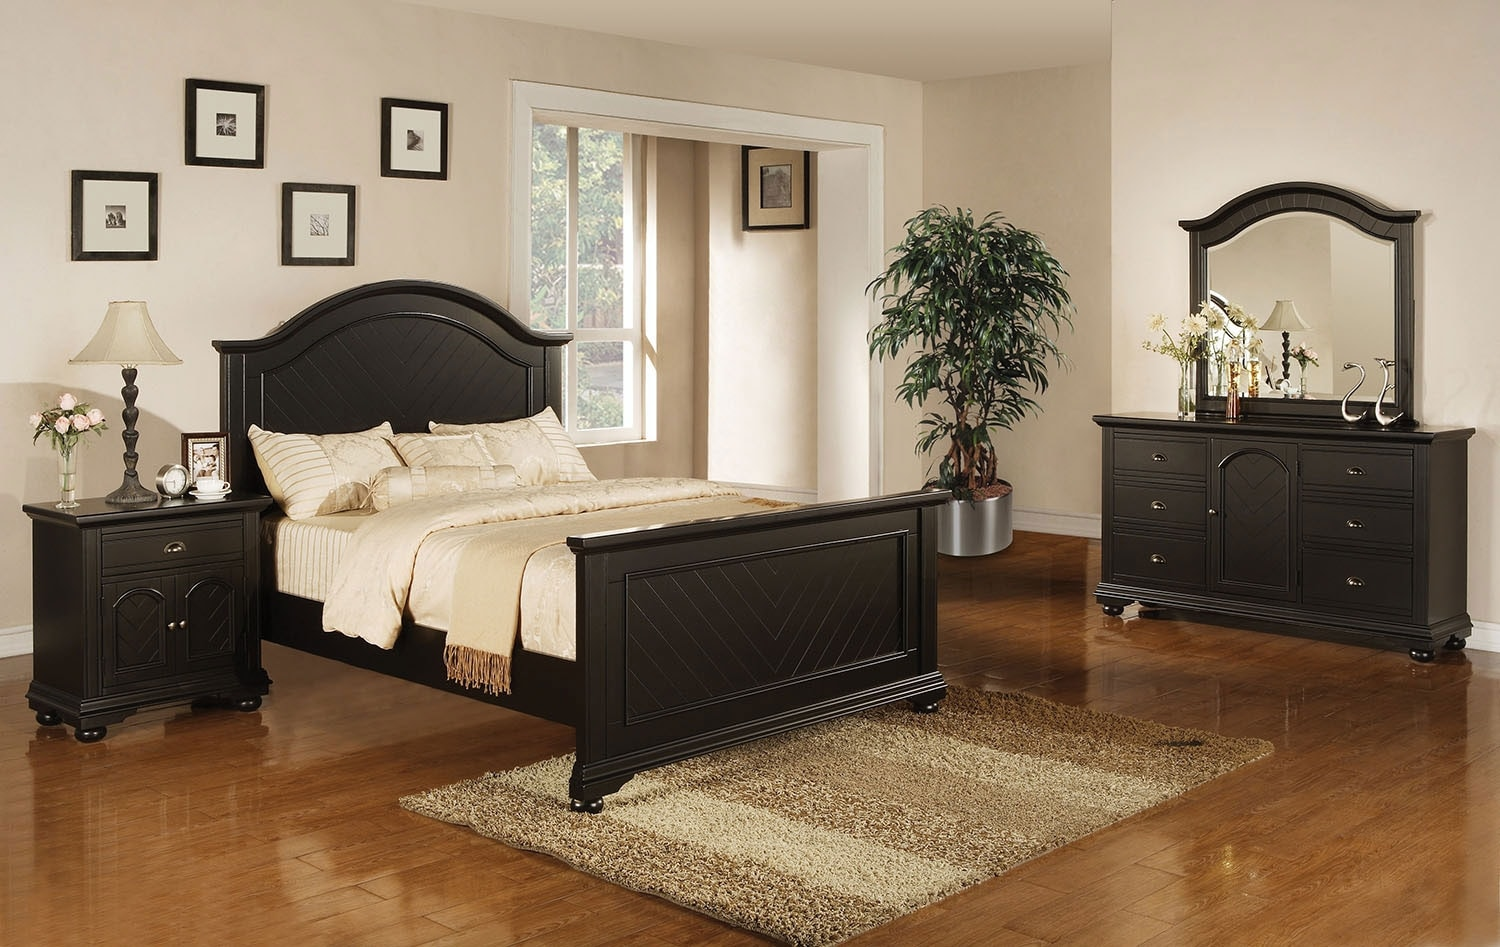 Brook Black King 6-Piece Bedroom Package